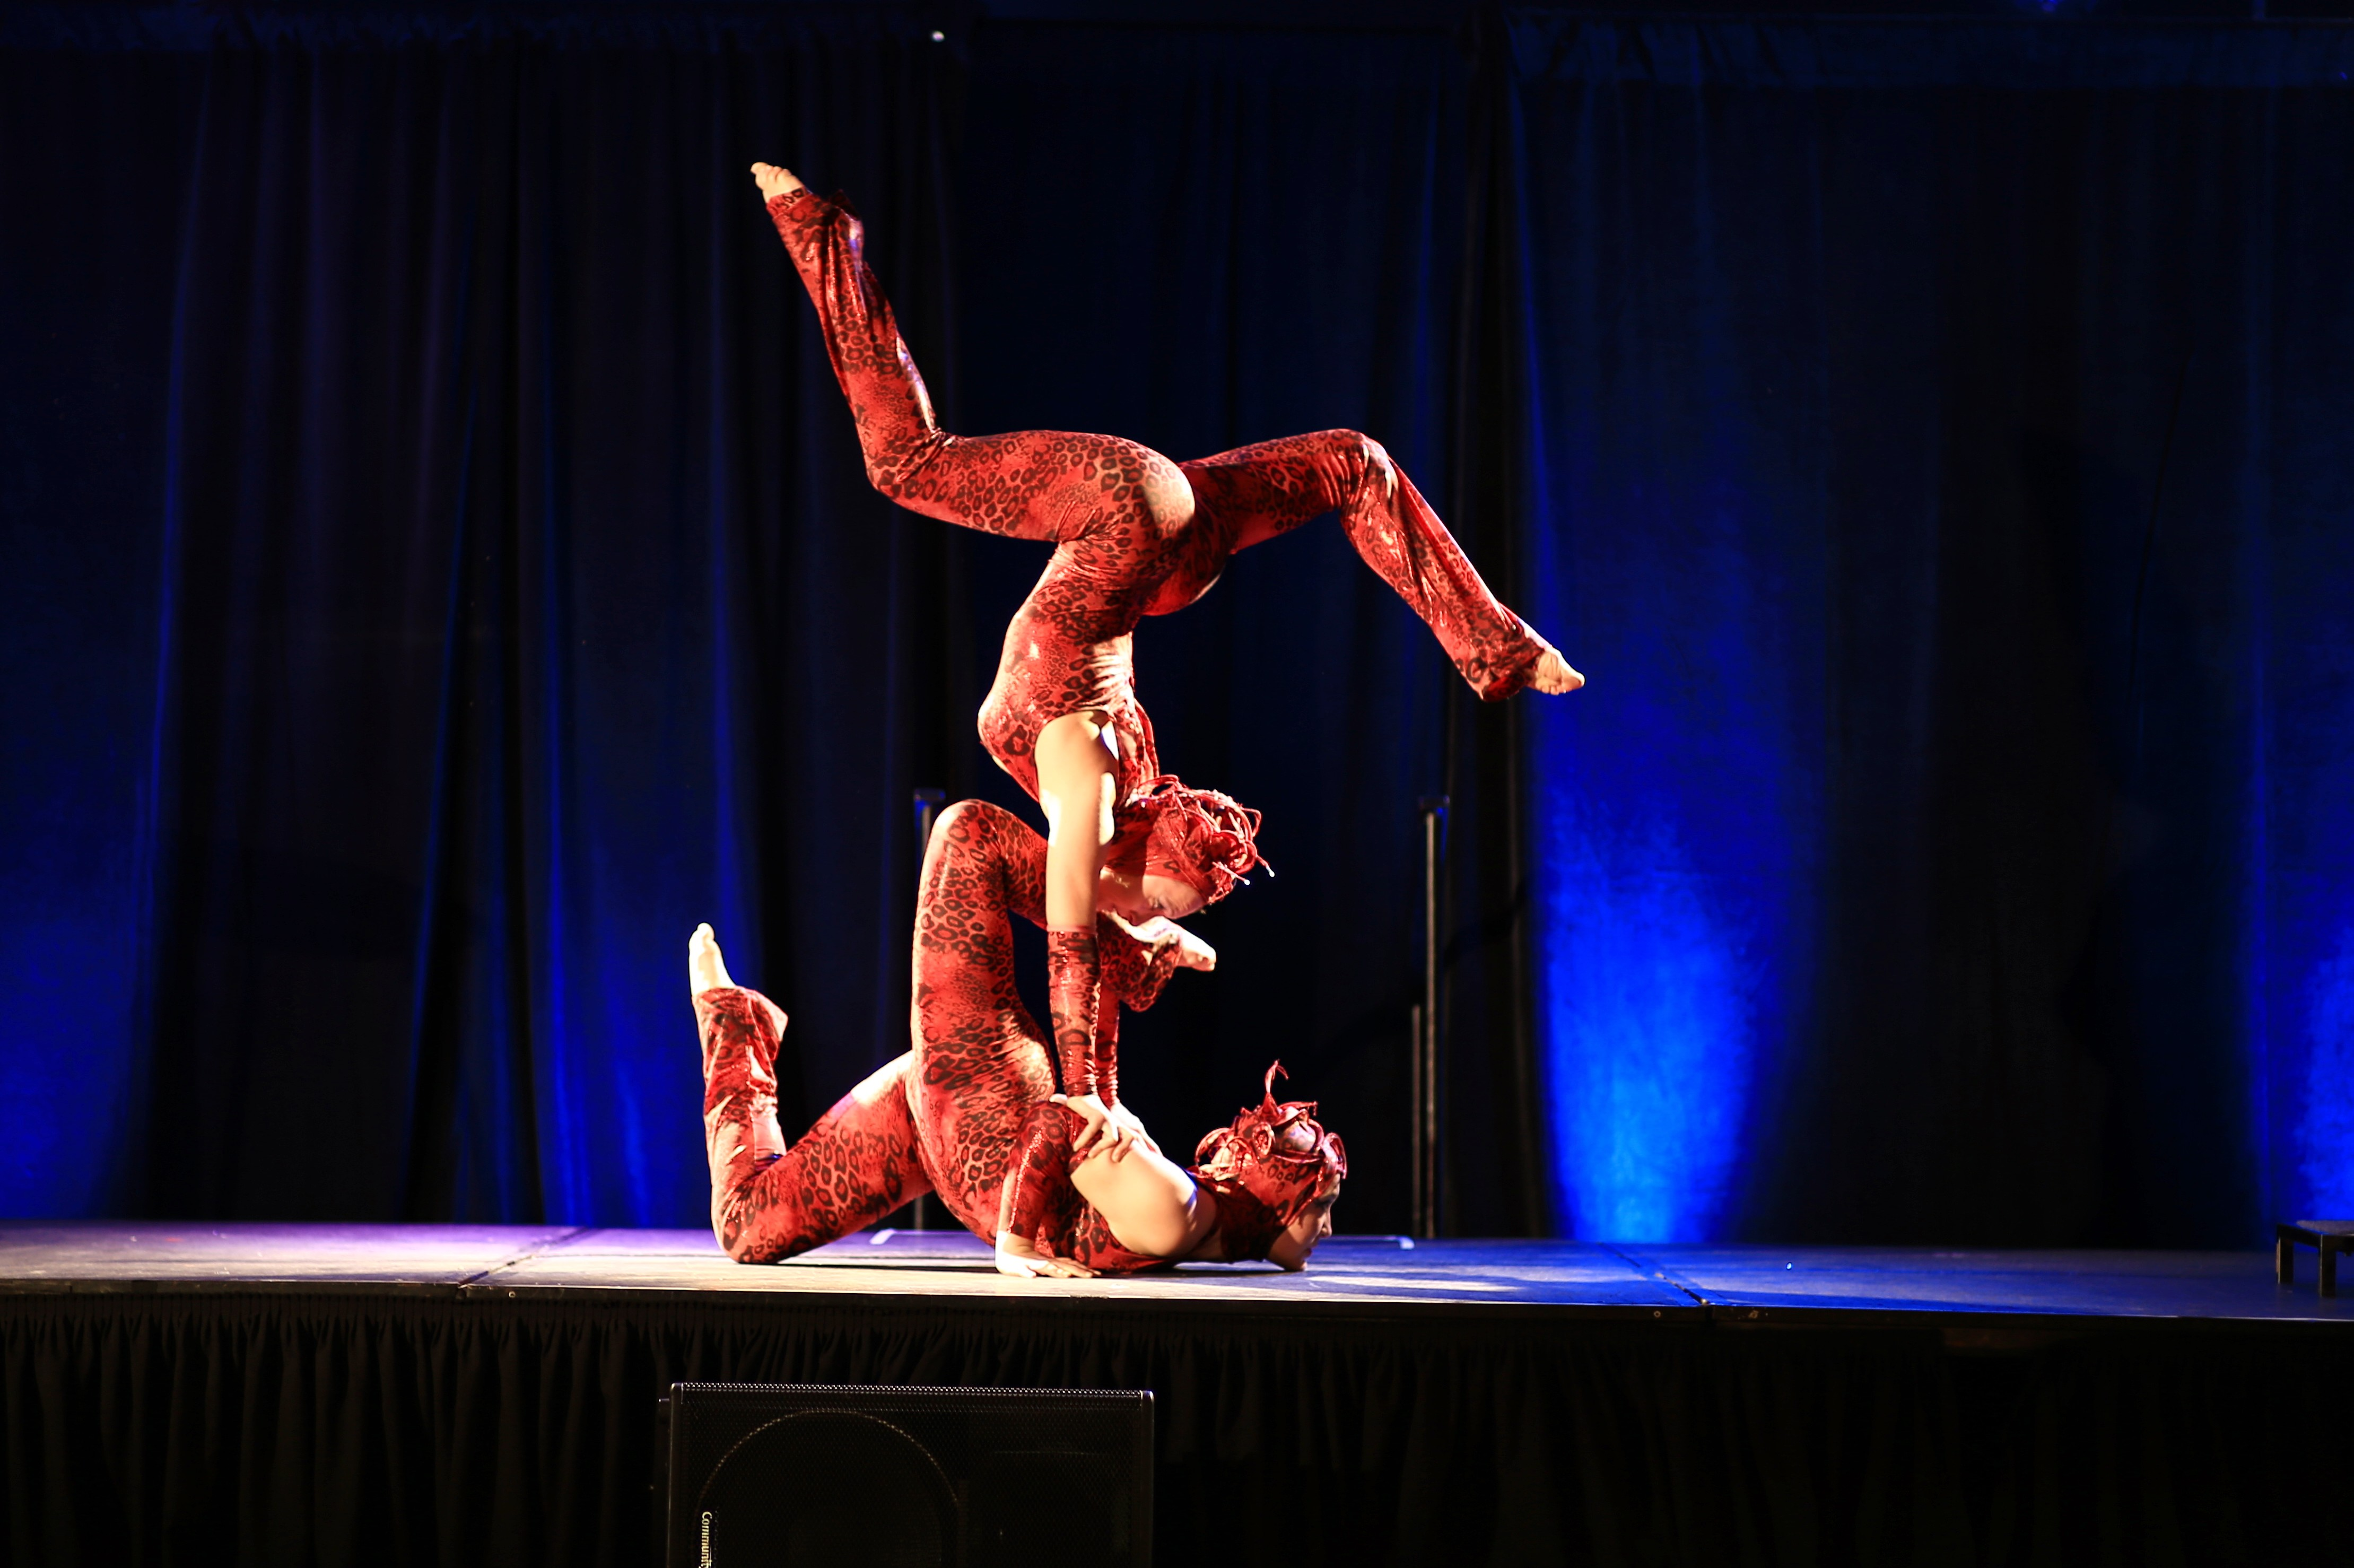 Acrobat Duo Performers